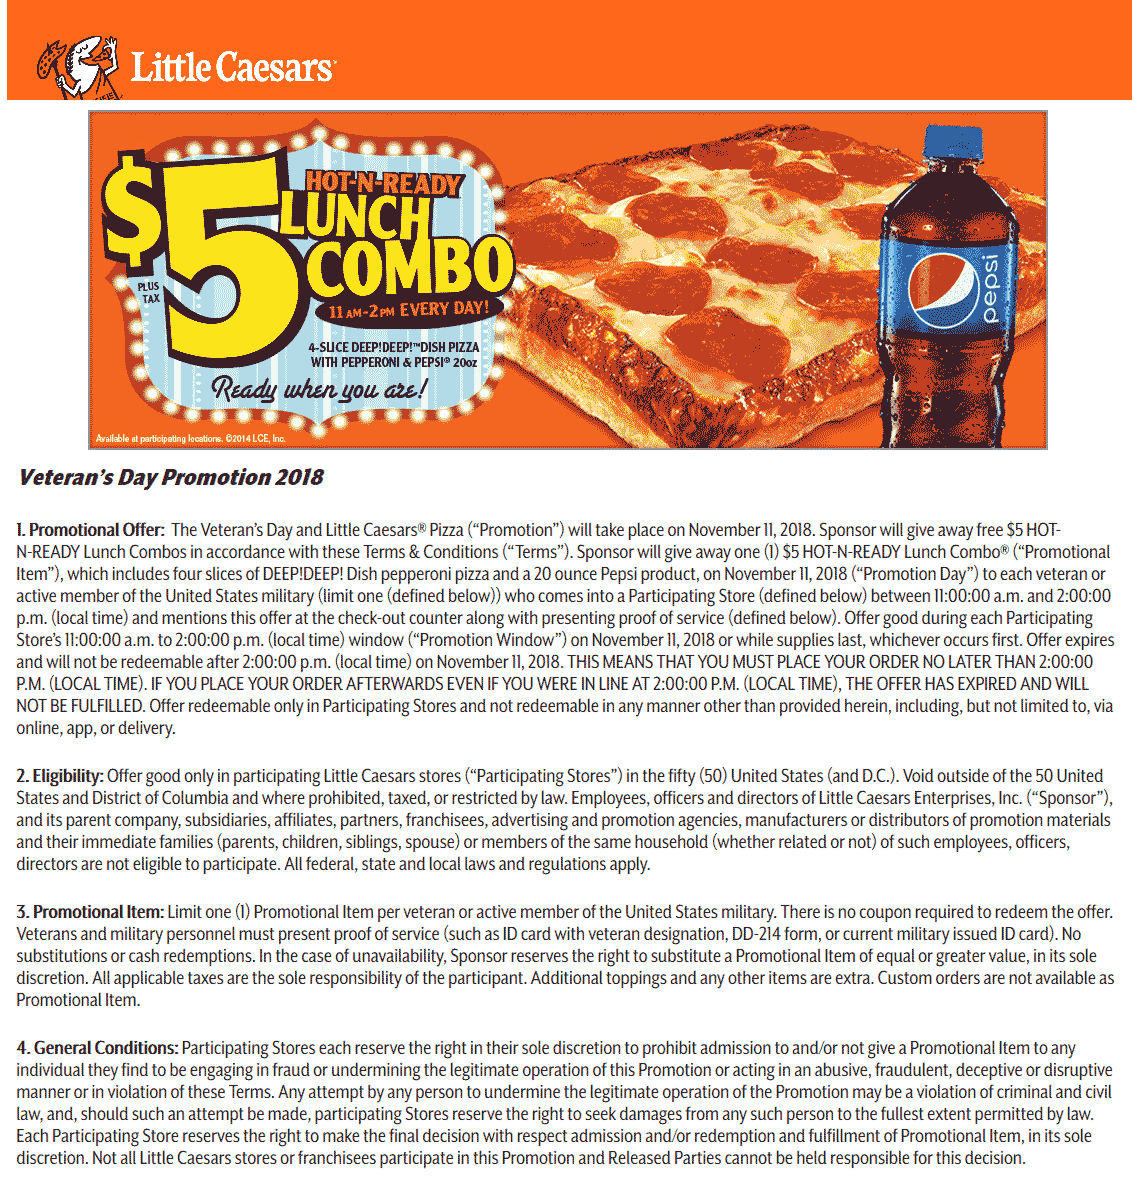 Little Caesars Coupon November 2019 Veterans enjoy a free pizza combo meal Sunday at Little Caesars